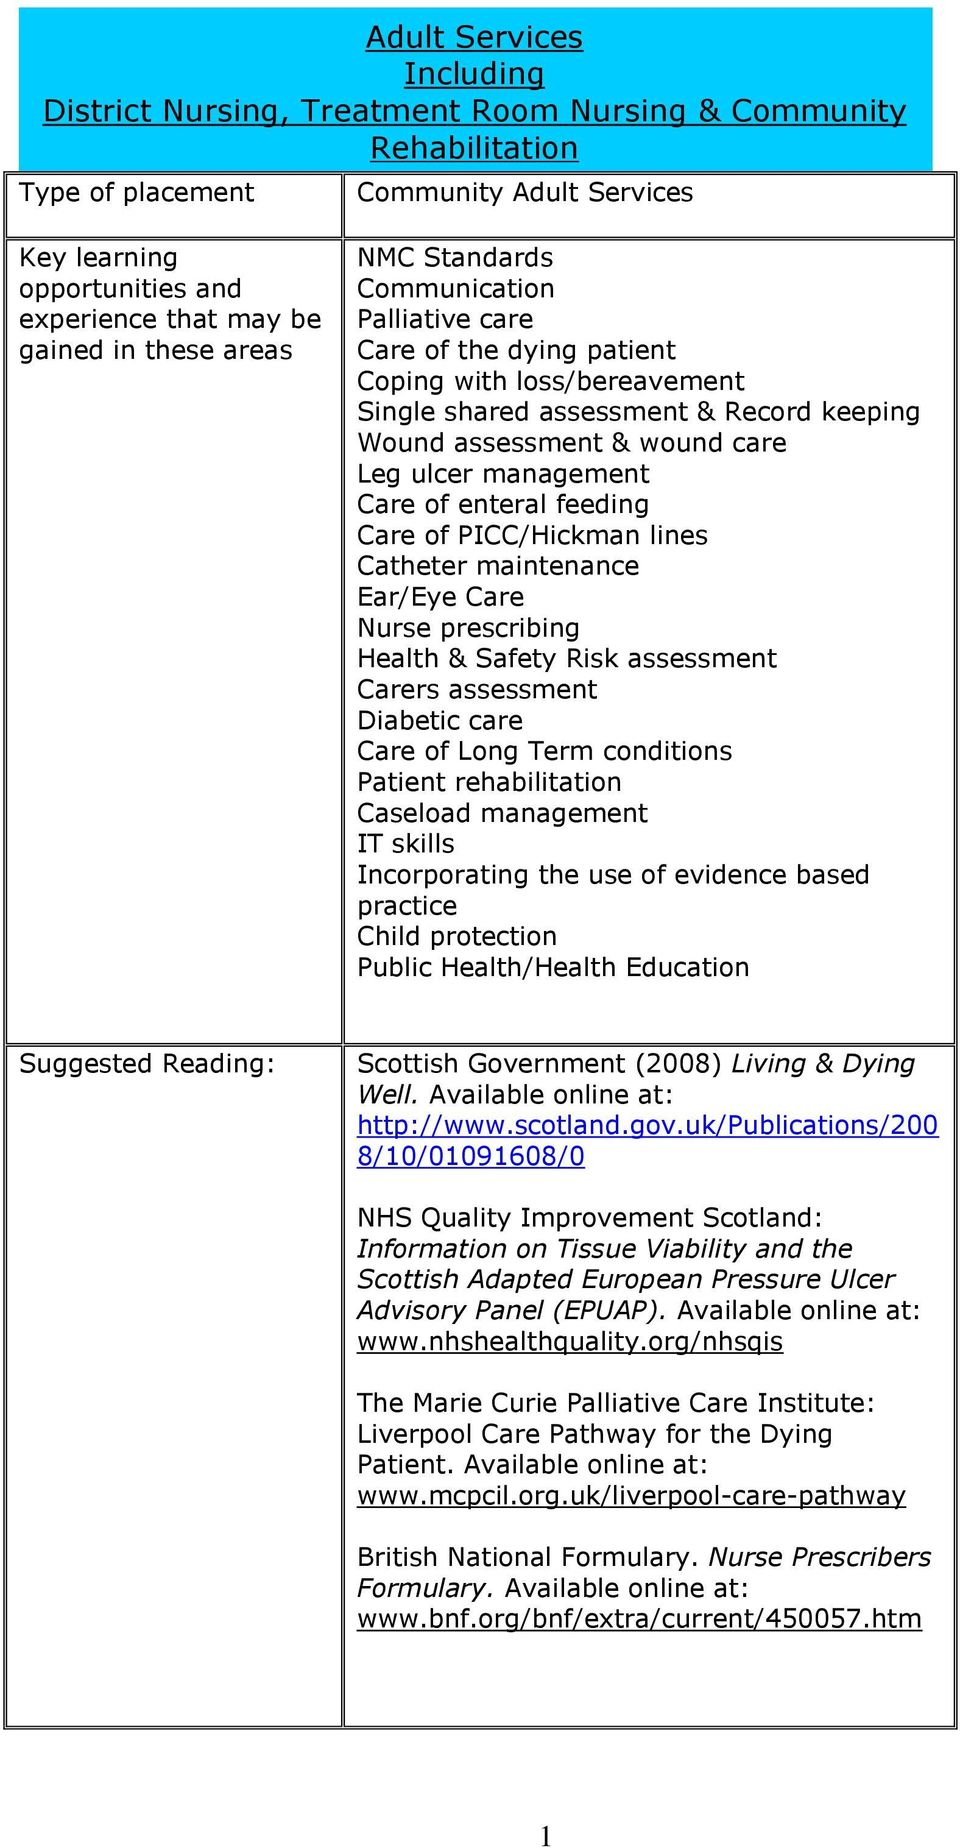 liverpool care pathway for the dying patient pdf